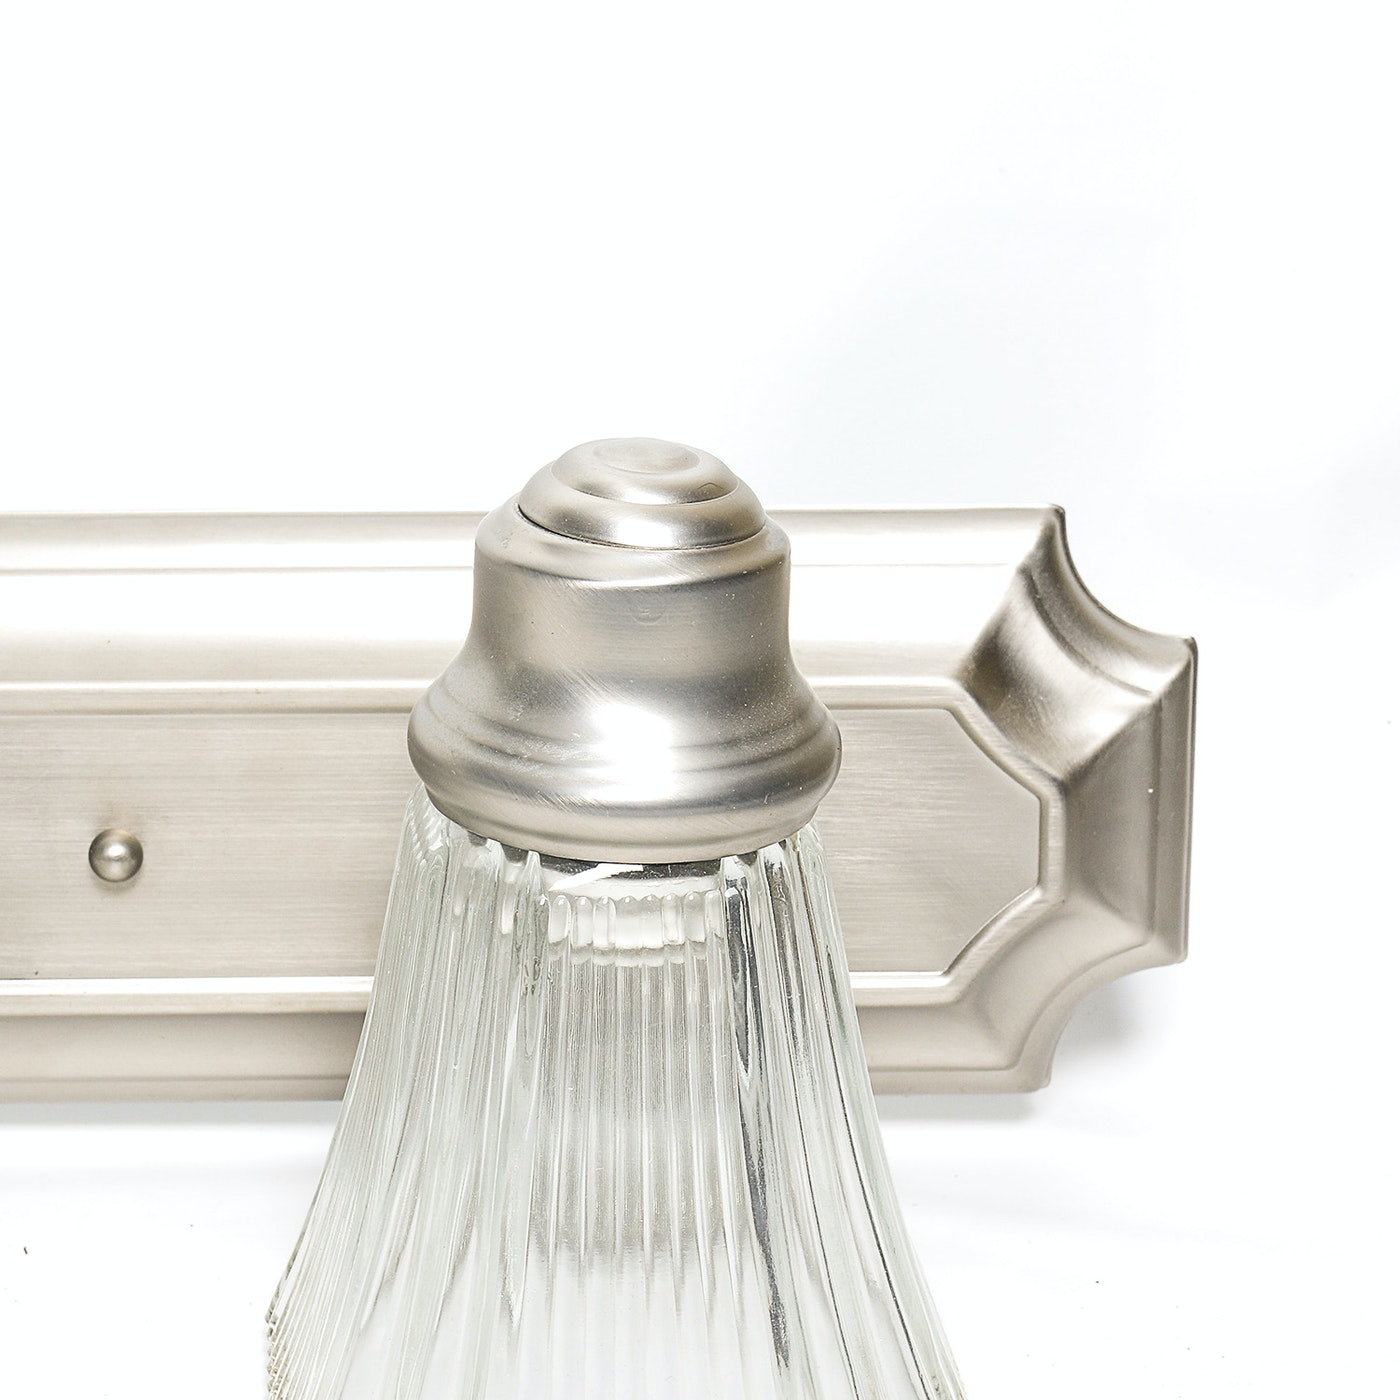 Mount Vanity Light Up Or Down : Vanity Light Wall Mount Fixture : EBTH